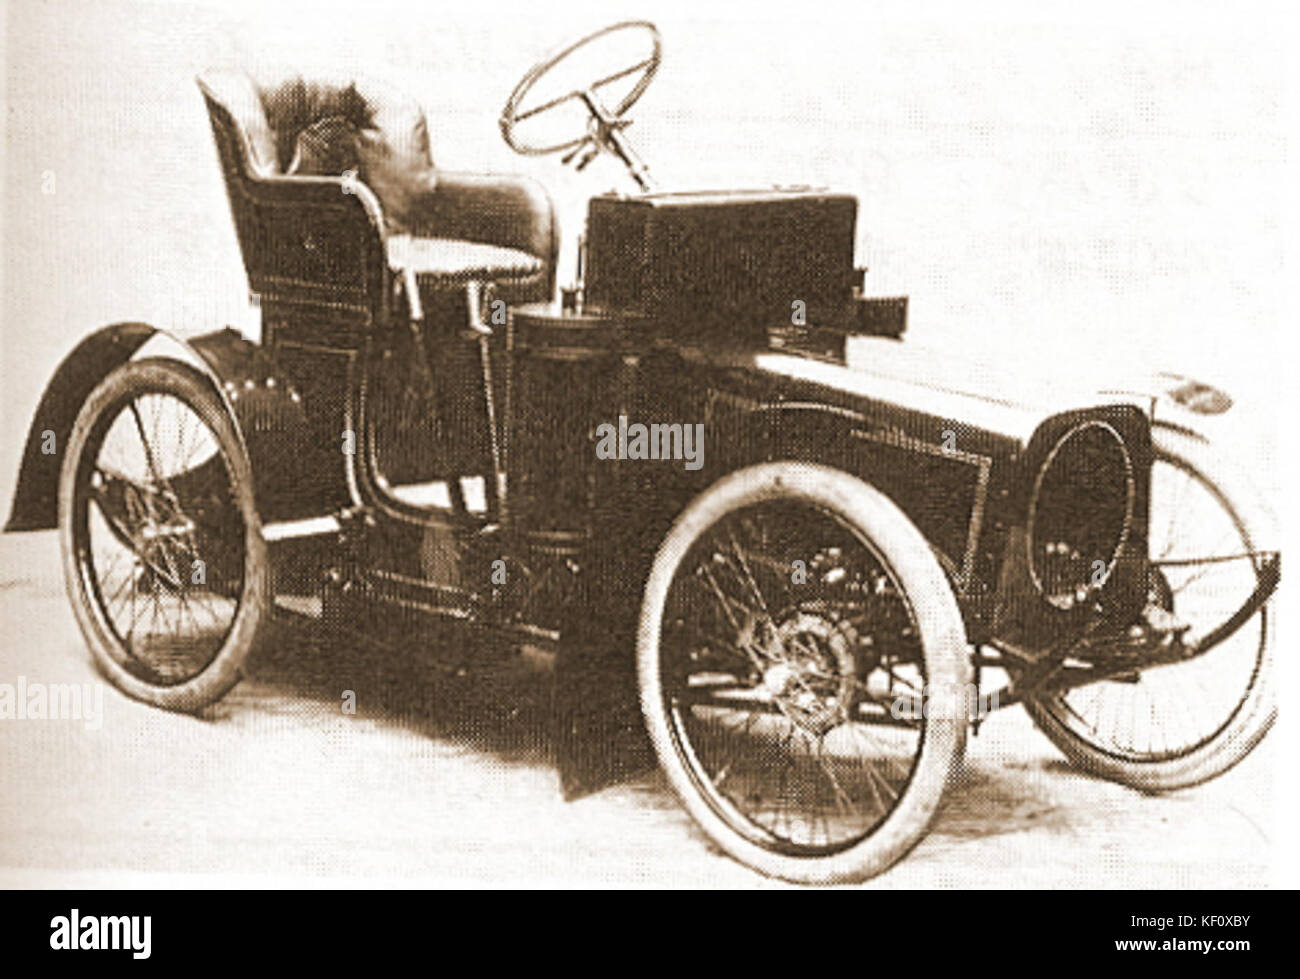 MHV Phoenix 6 hp Runabout 1906 - Stock Image